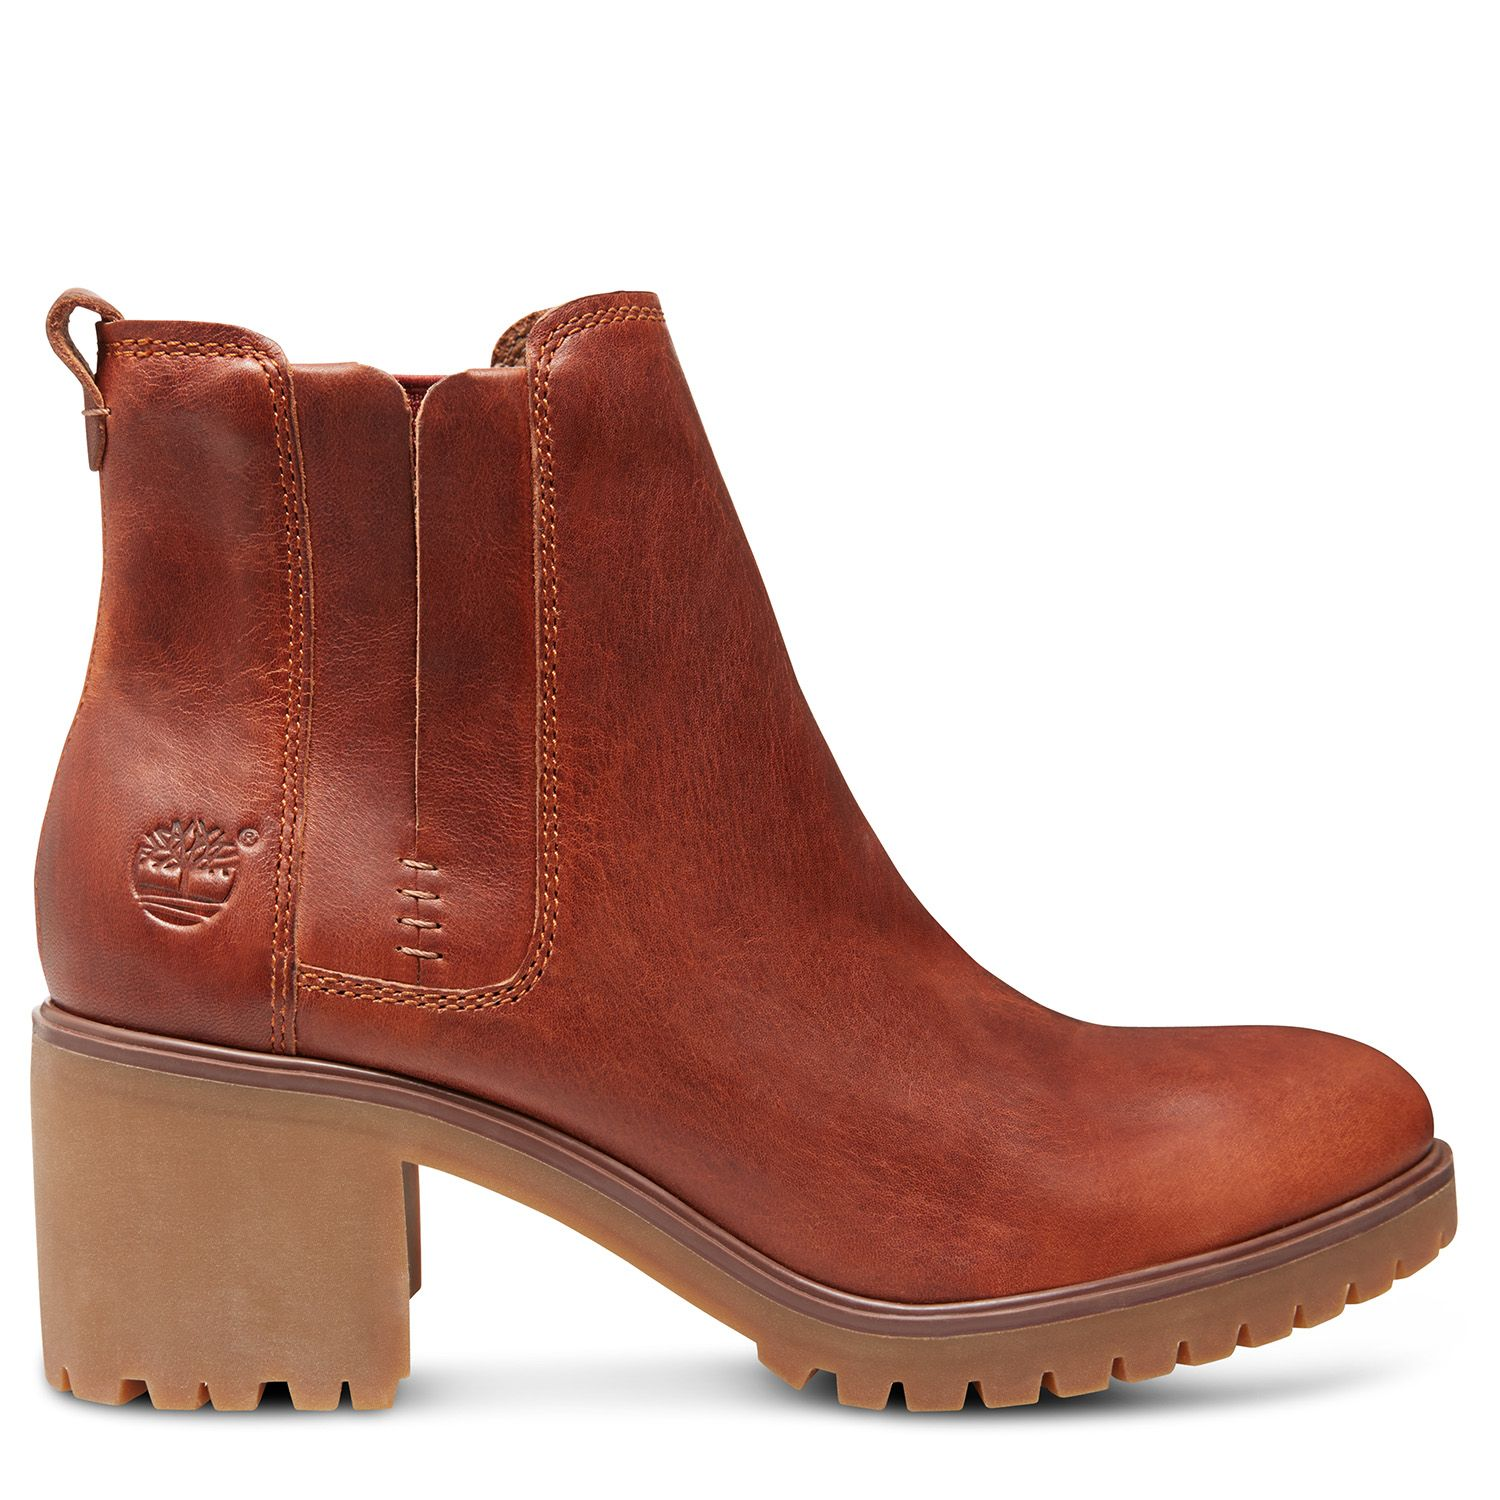 Women's Averly Chelsea Boot